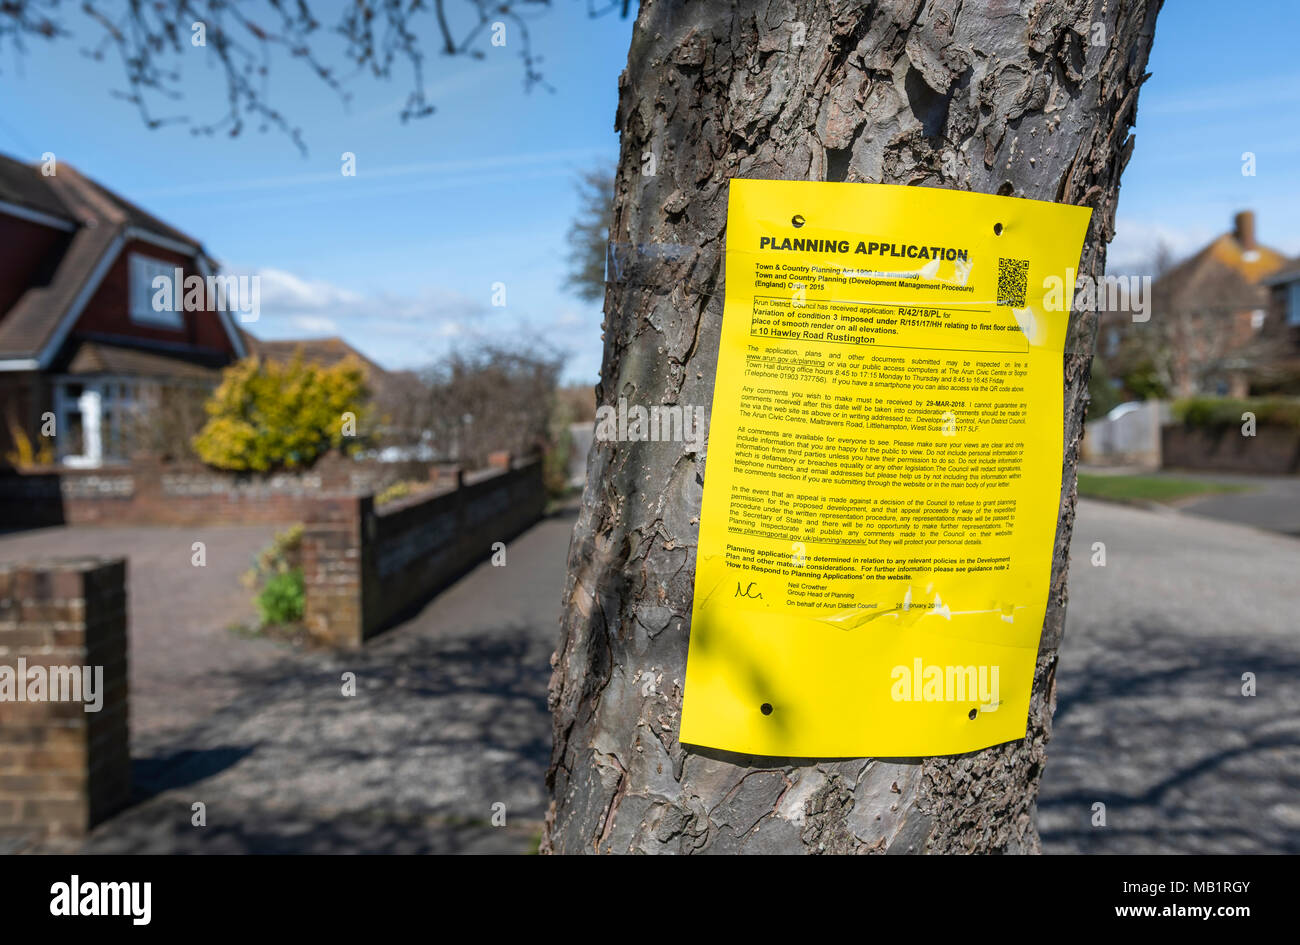 Council planning application form fixed to a tree outside a house in a town in England, UK. Planning permission notice. - Stock Image